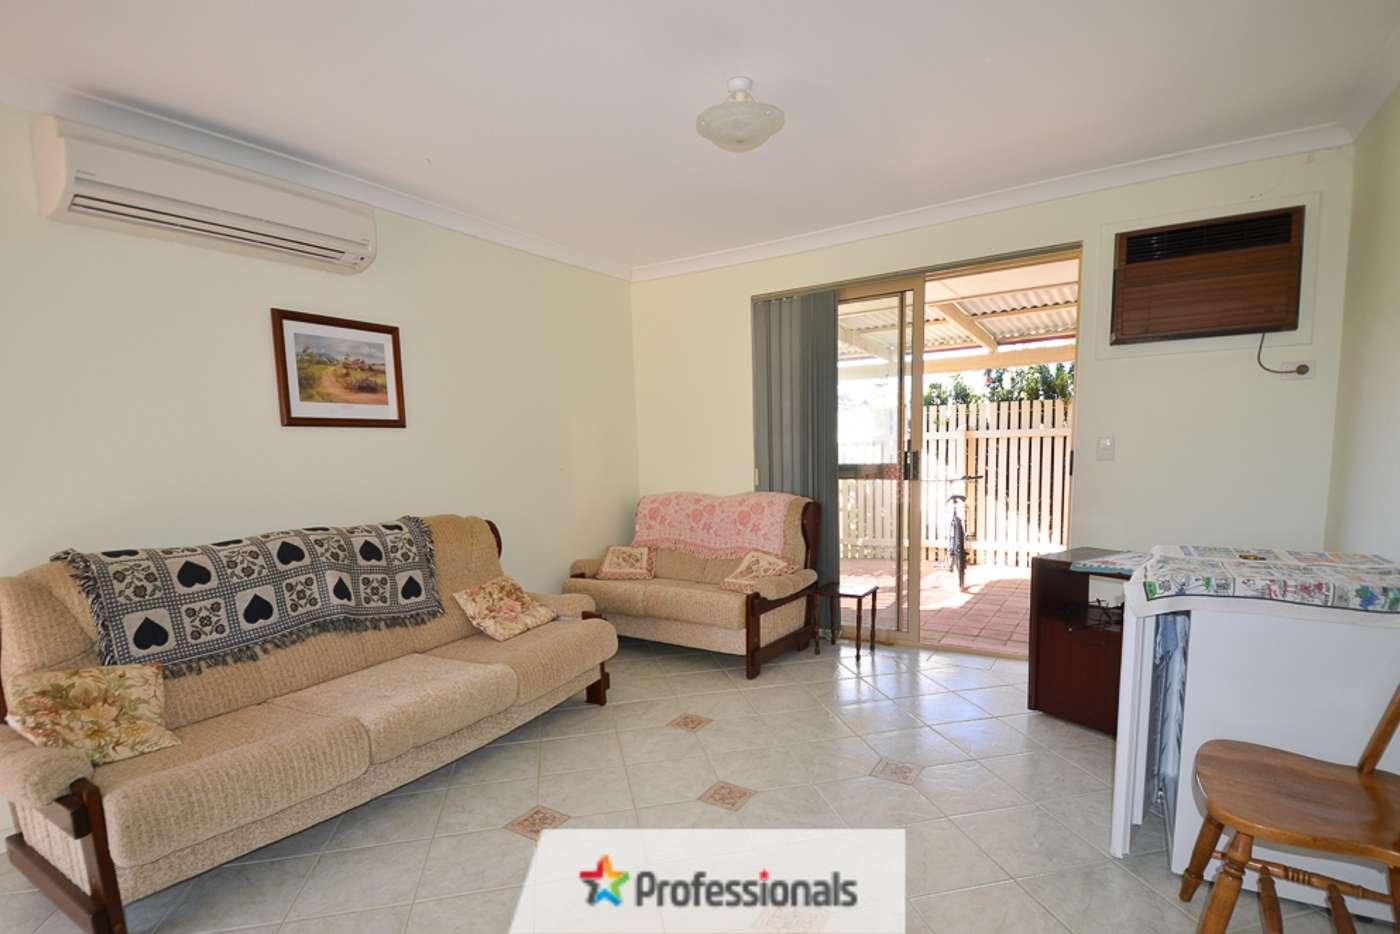 Seventh view of Homely house listing, 6A Leander Street, Falcon WA 6210